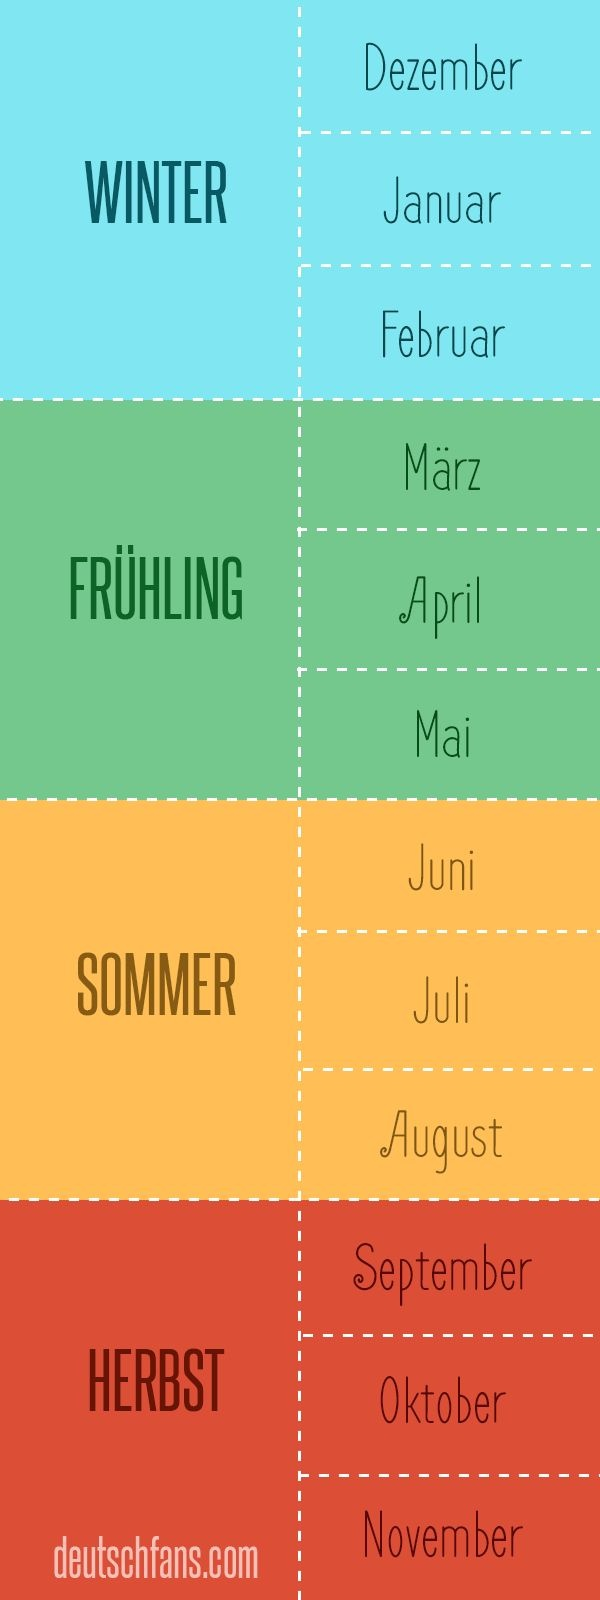 9d15658d1ce249e366b0bd1d2fcd165e--german-language-learning-seasons-months